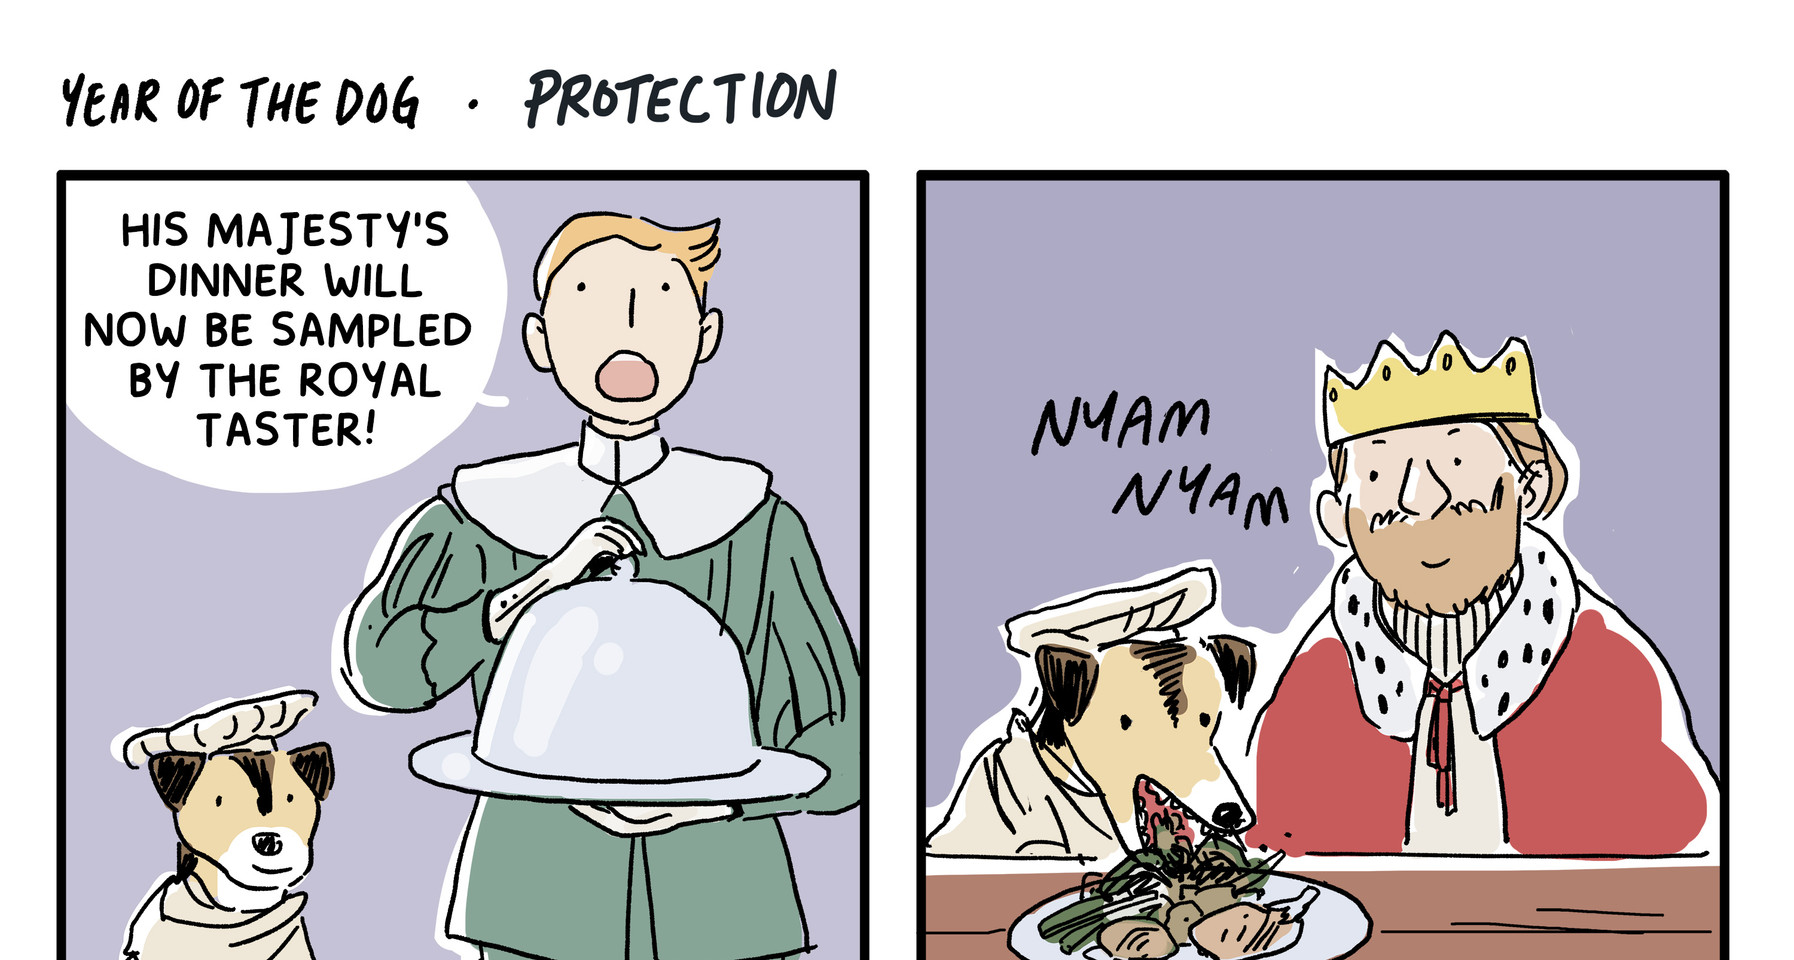 Year of the Dog - Protection